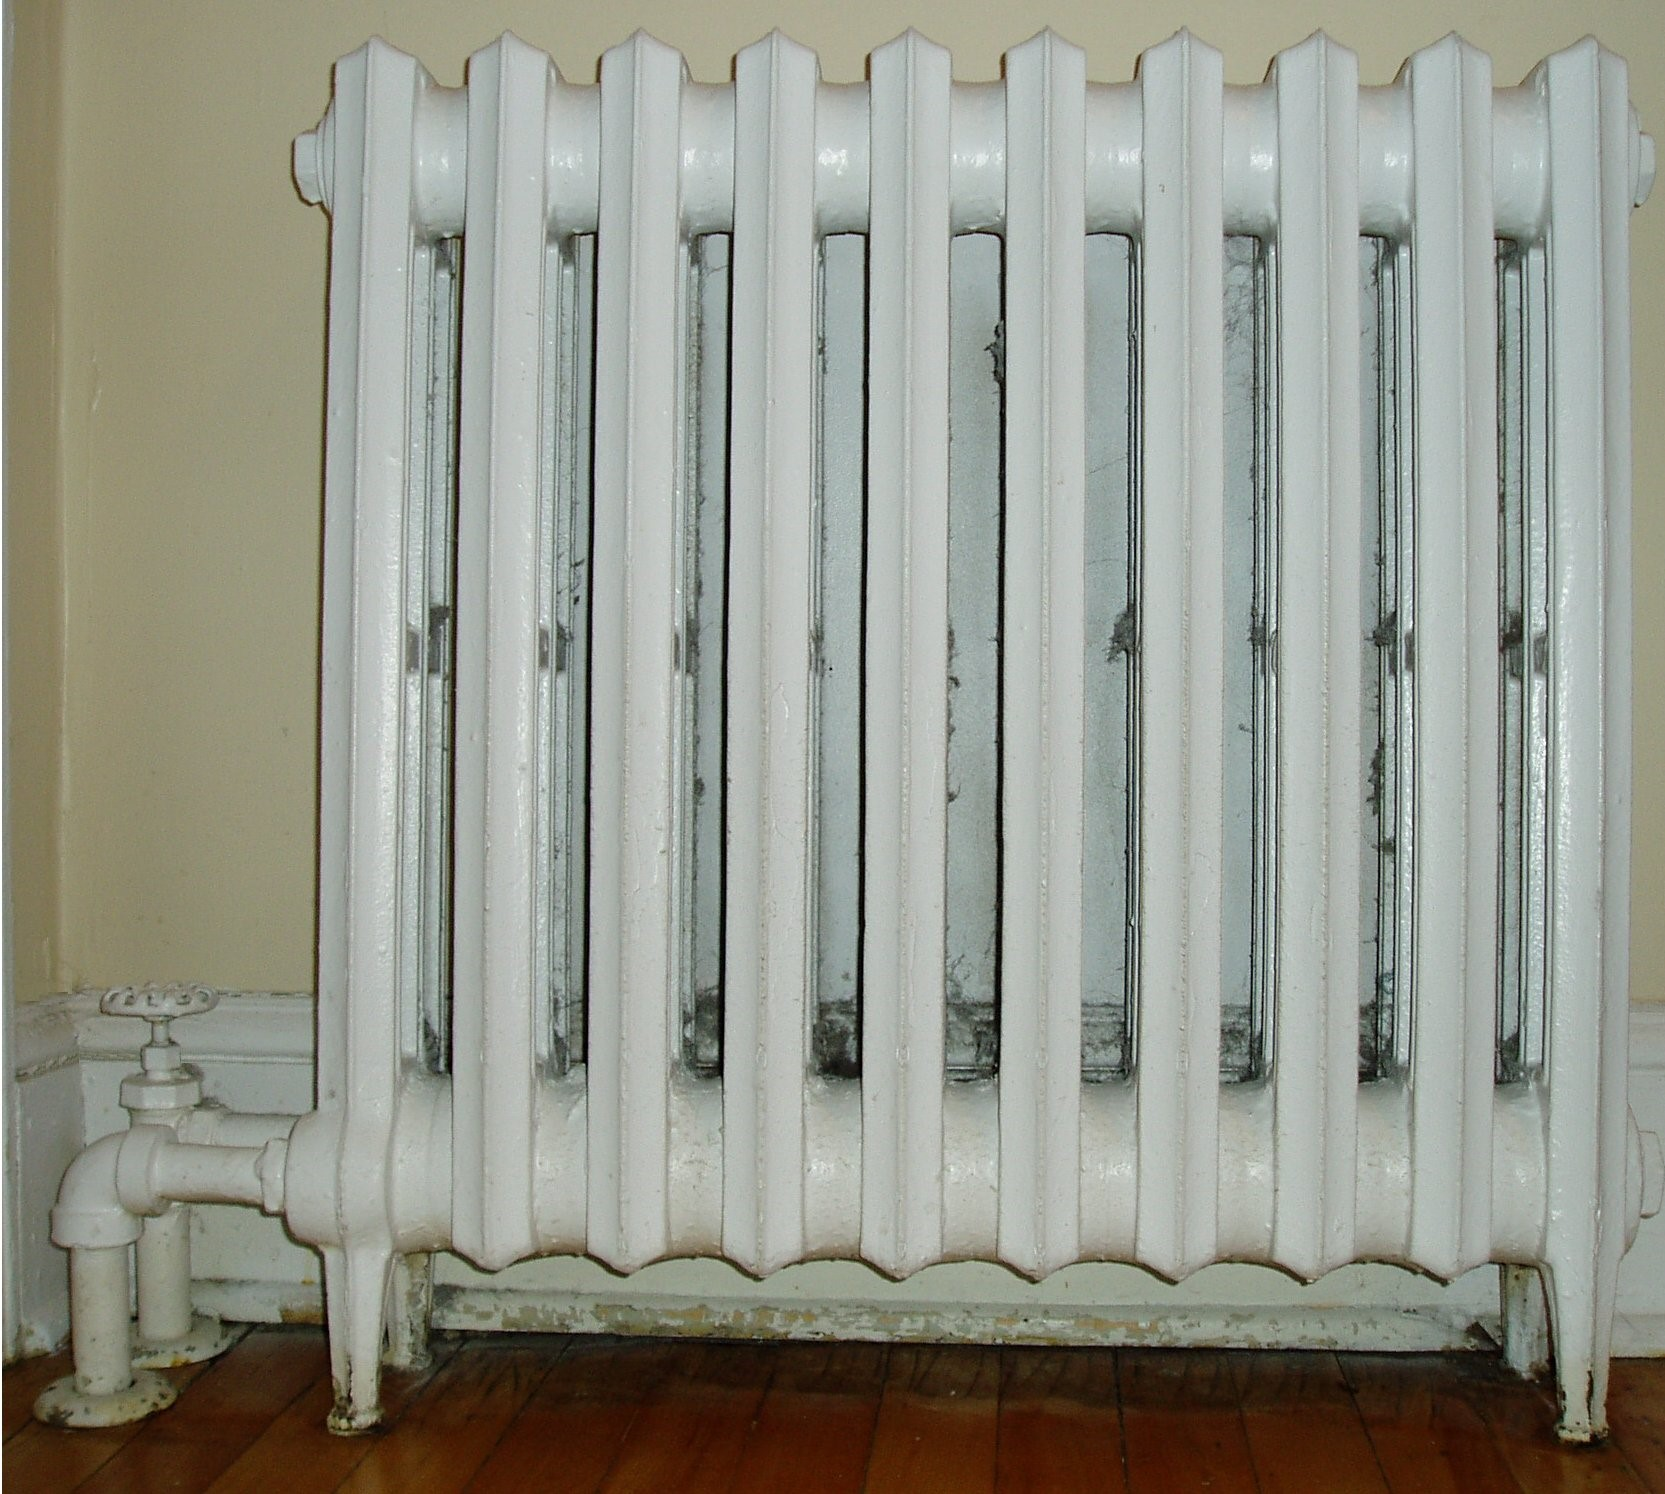 replacing a radiator at home